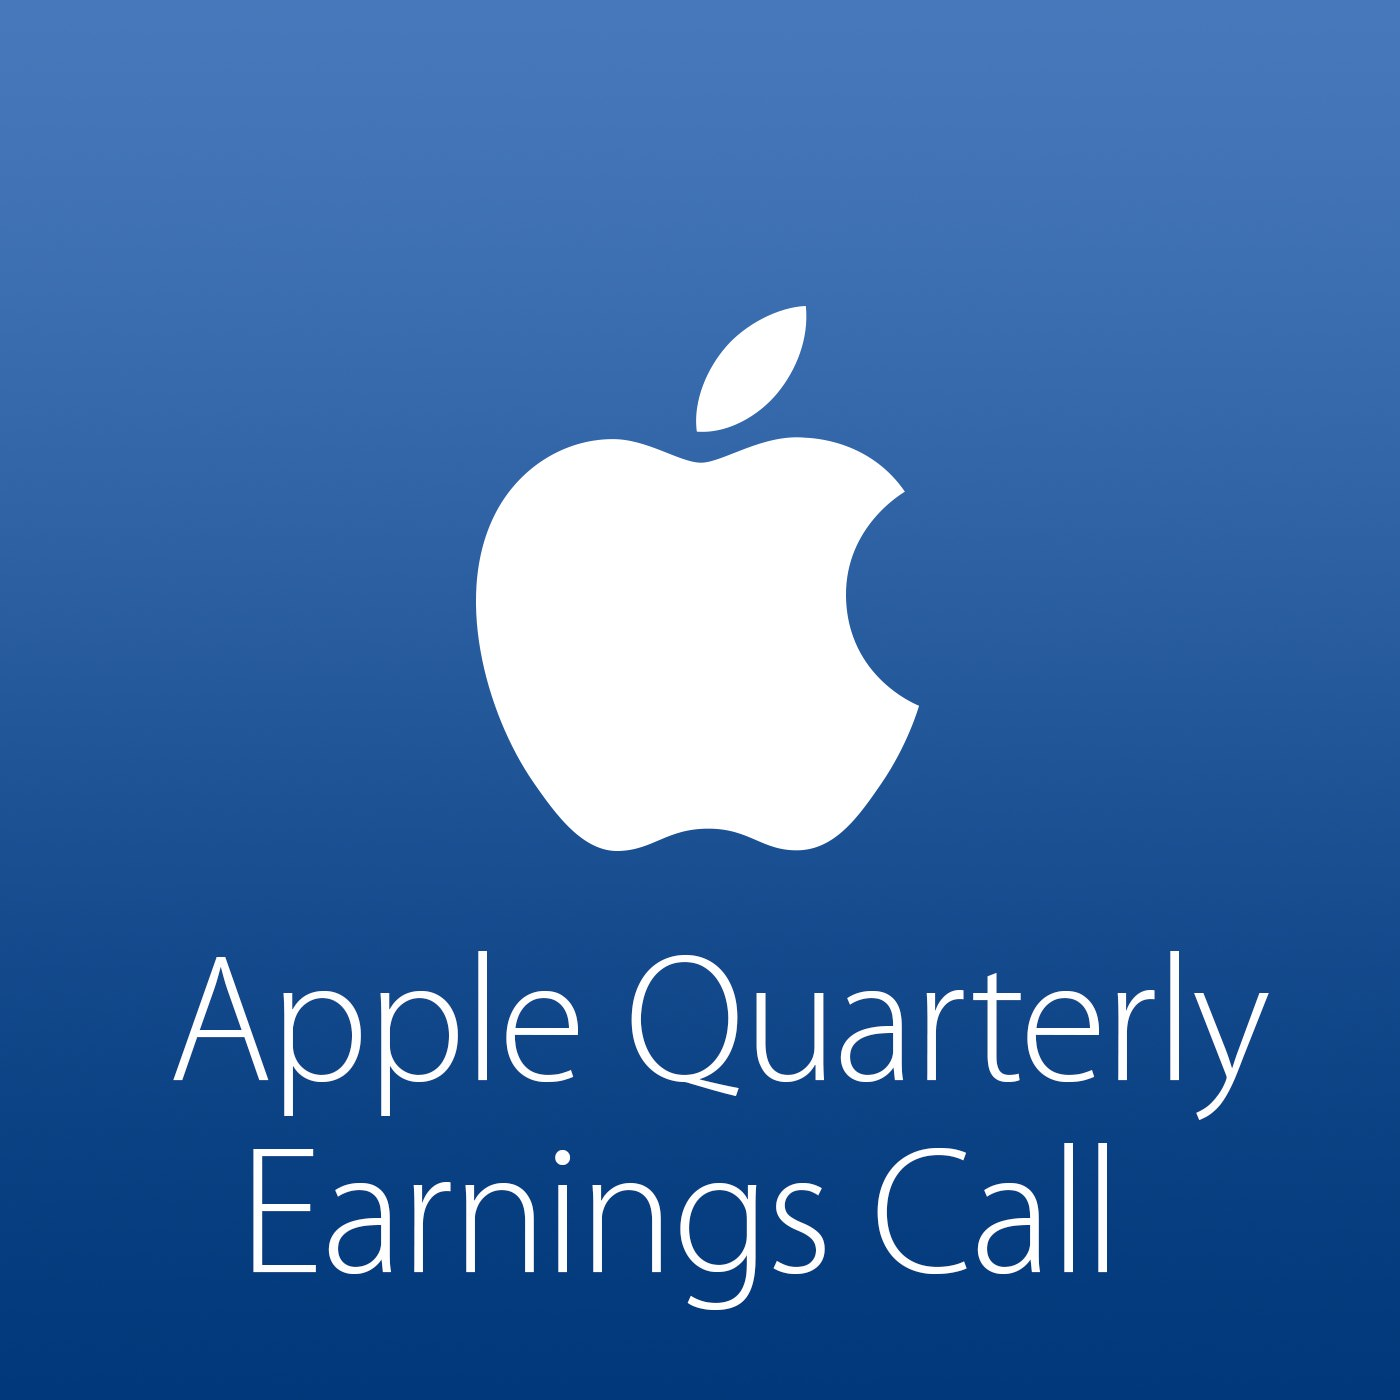 Seeking Alpha, FY15 Q1の「Apple Quarterly Earnings Call」のトランスクリプトを公開